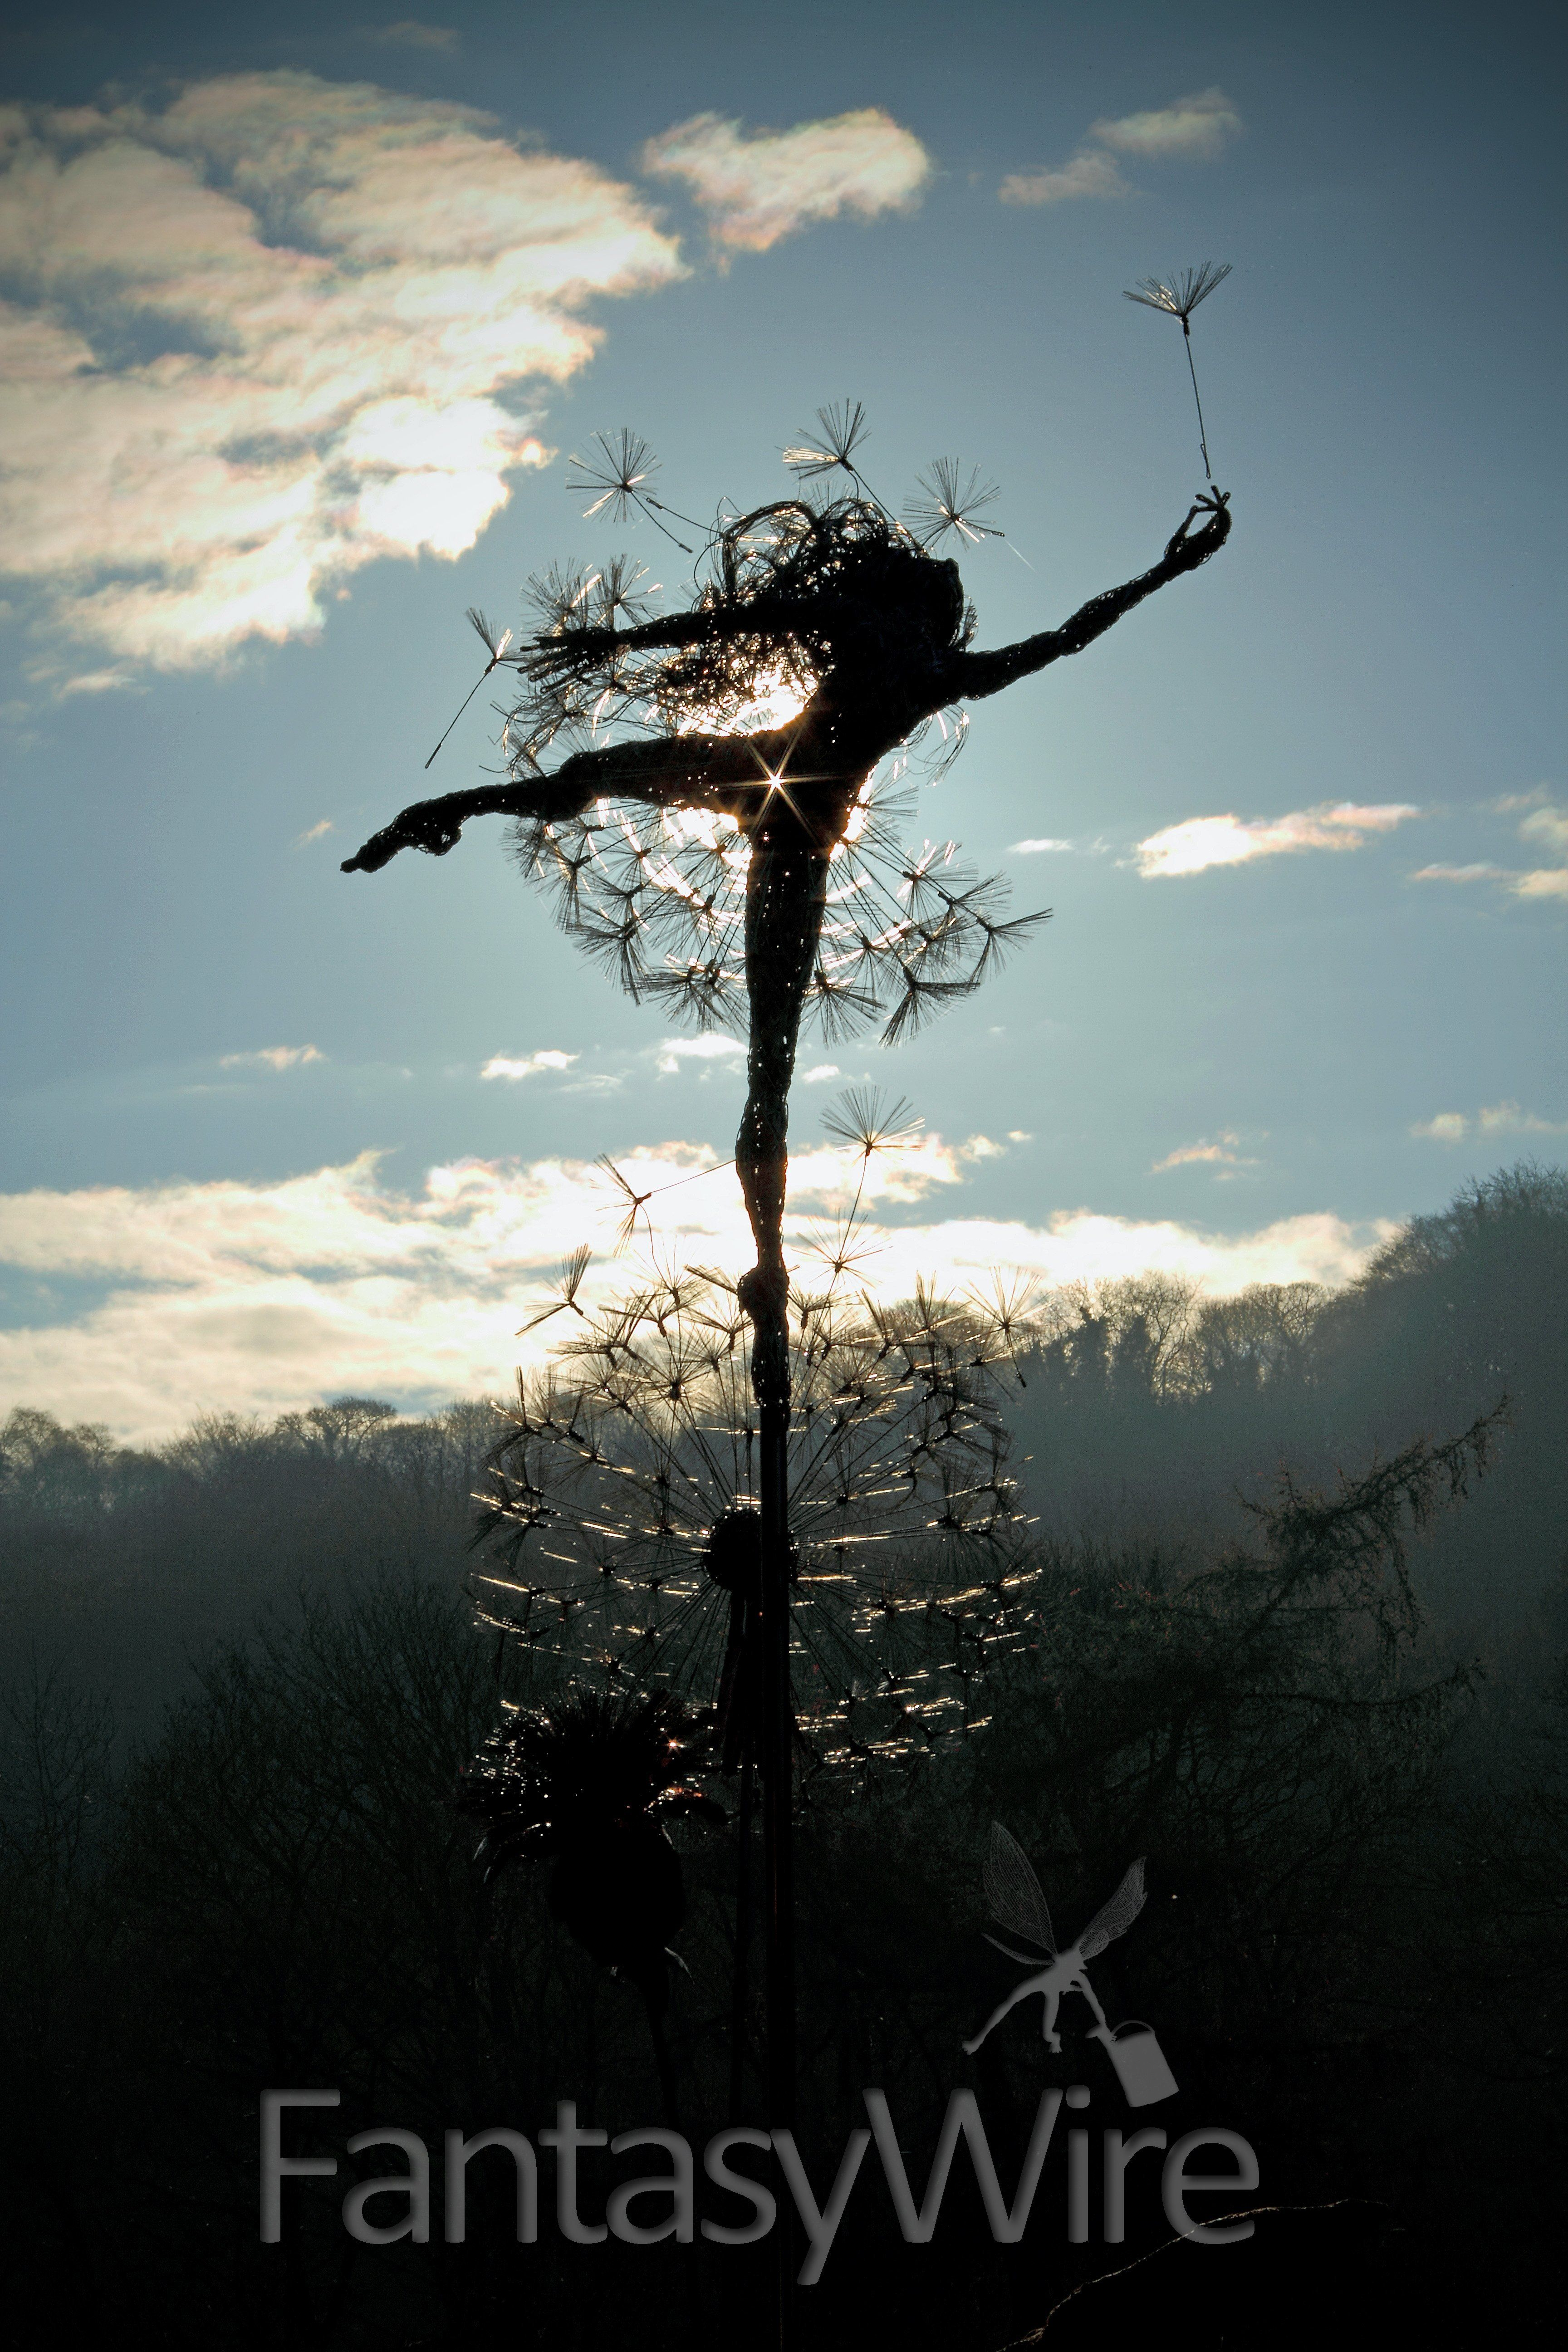 dancing with dandelions and robin wight sculpture pinterest